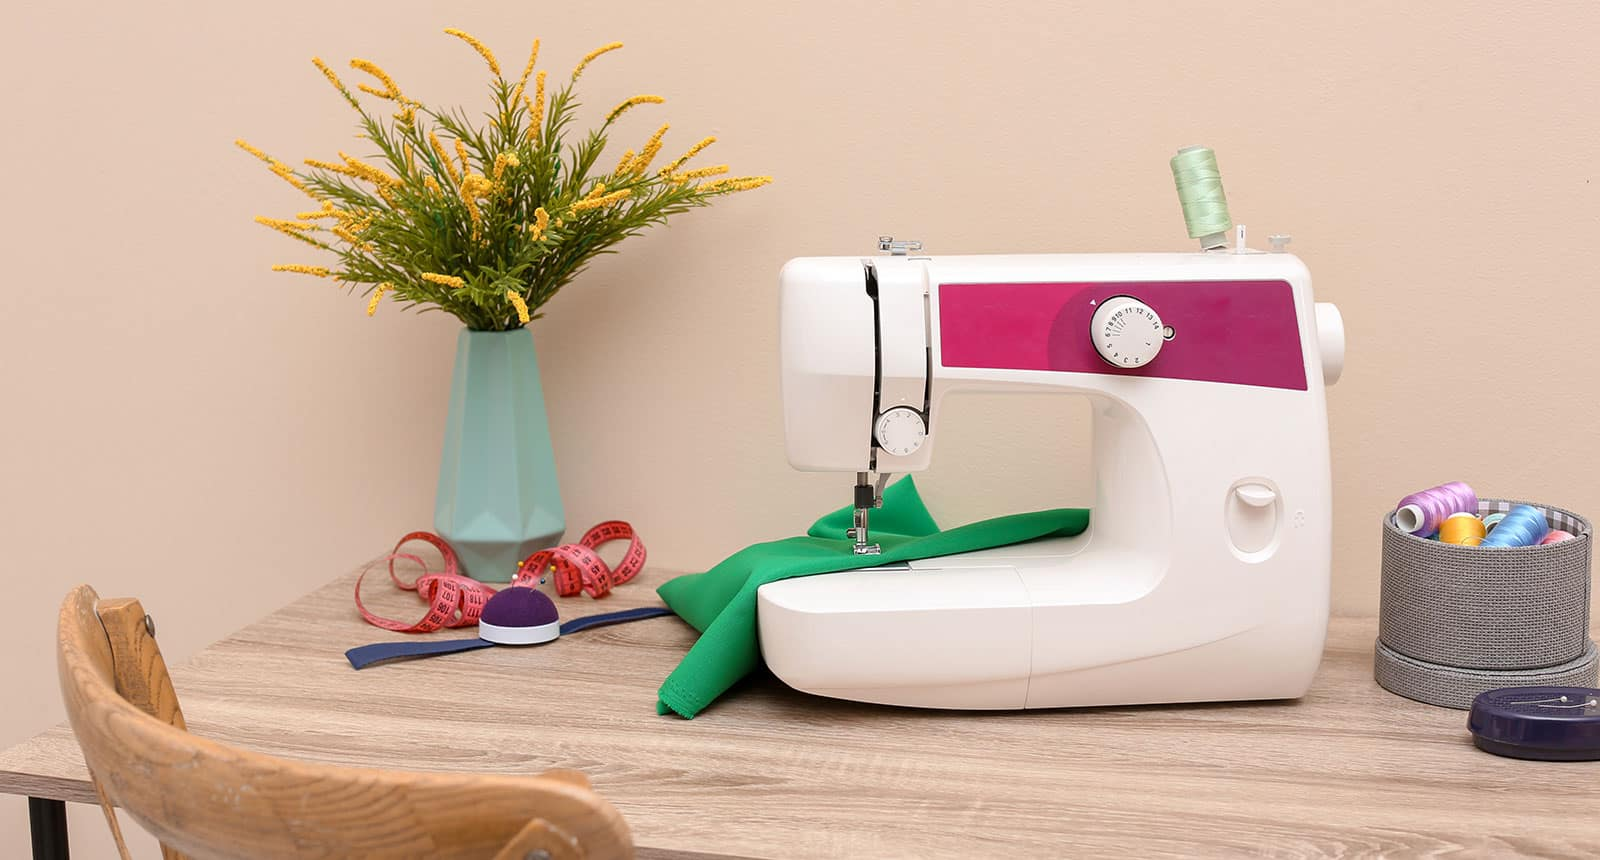 Dating sewing serial best (!) html singer number 2021 by machine Find sewing